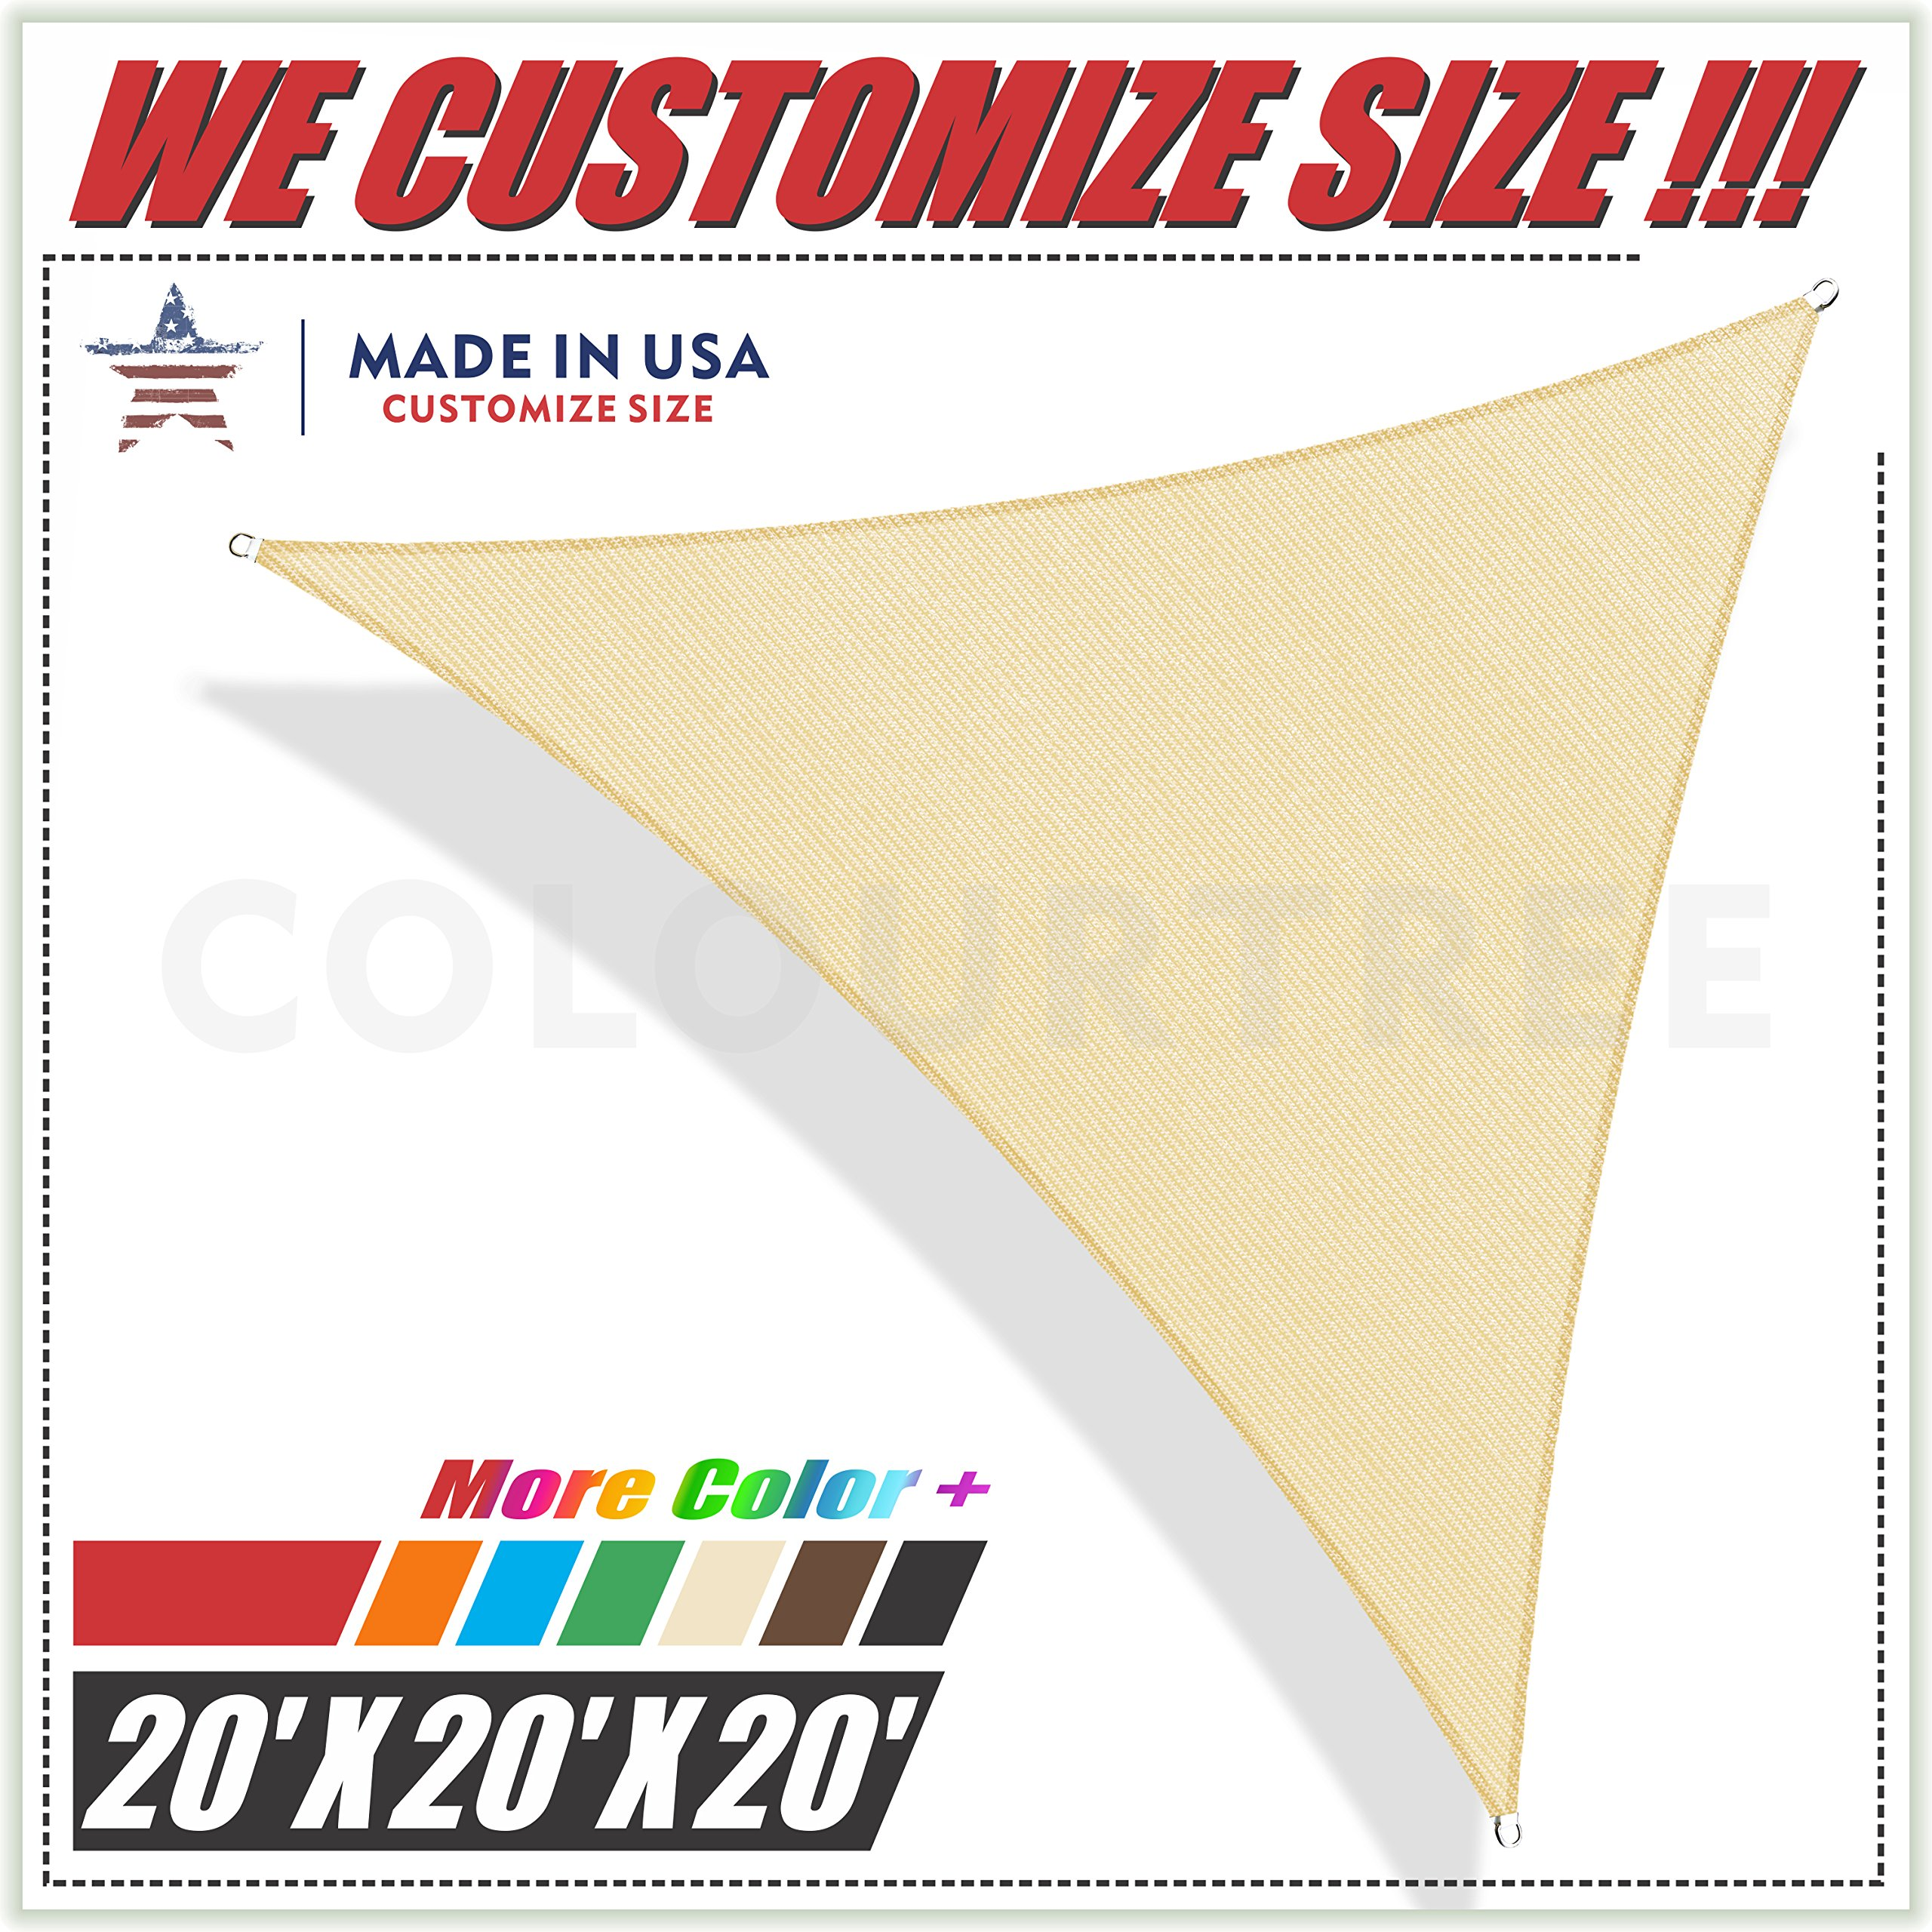 ColourTree 20' x 20' x 20' Beige Sun Shade Sail Triangle Canopy - UV Resistant Heavy Duty Commercial Grade Outdoor Patio Carport (Custom Size Available) by ColourTree